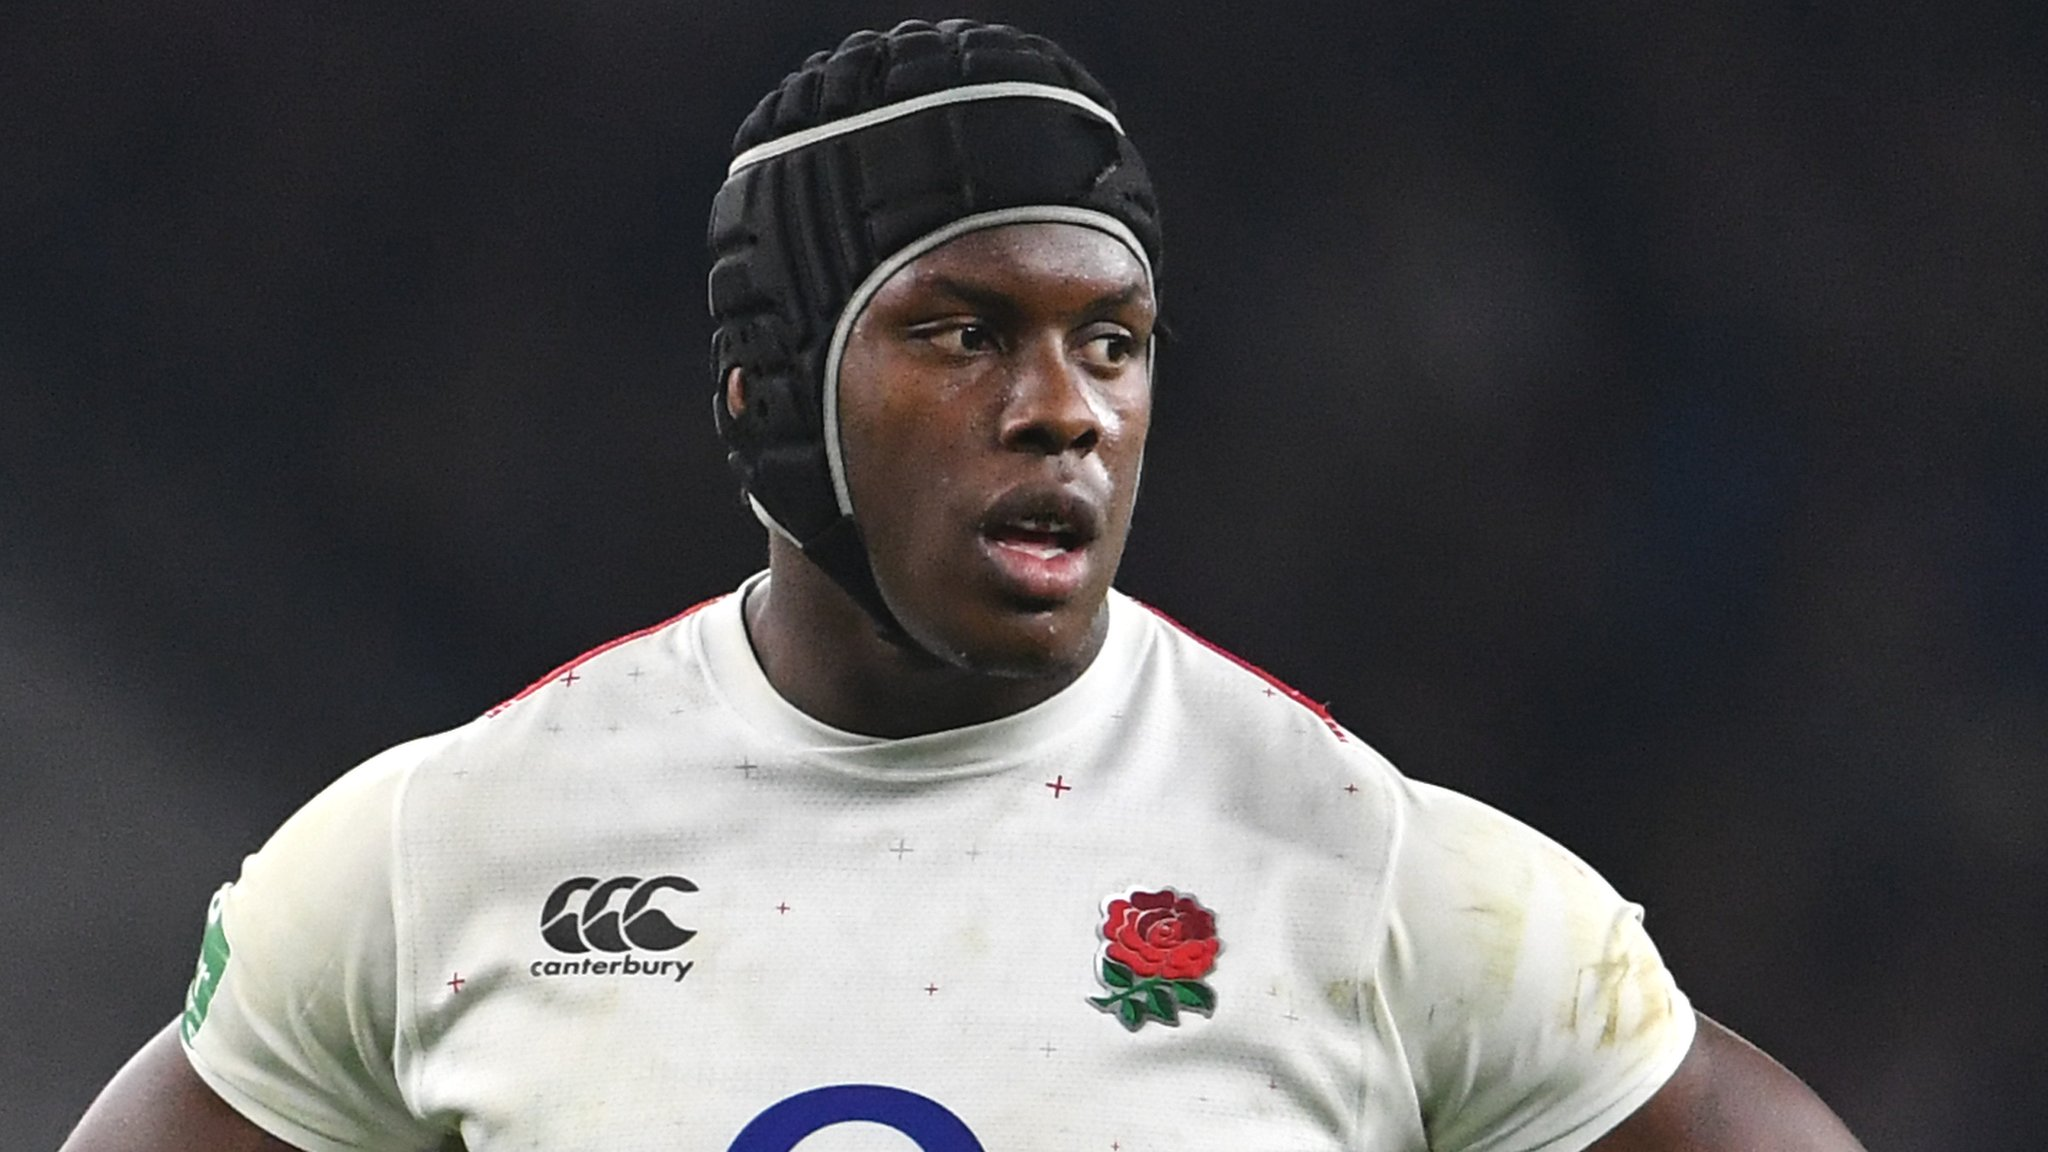 England lock Itoje signs new Saracens deal through to 2022